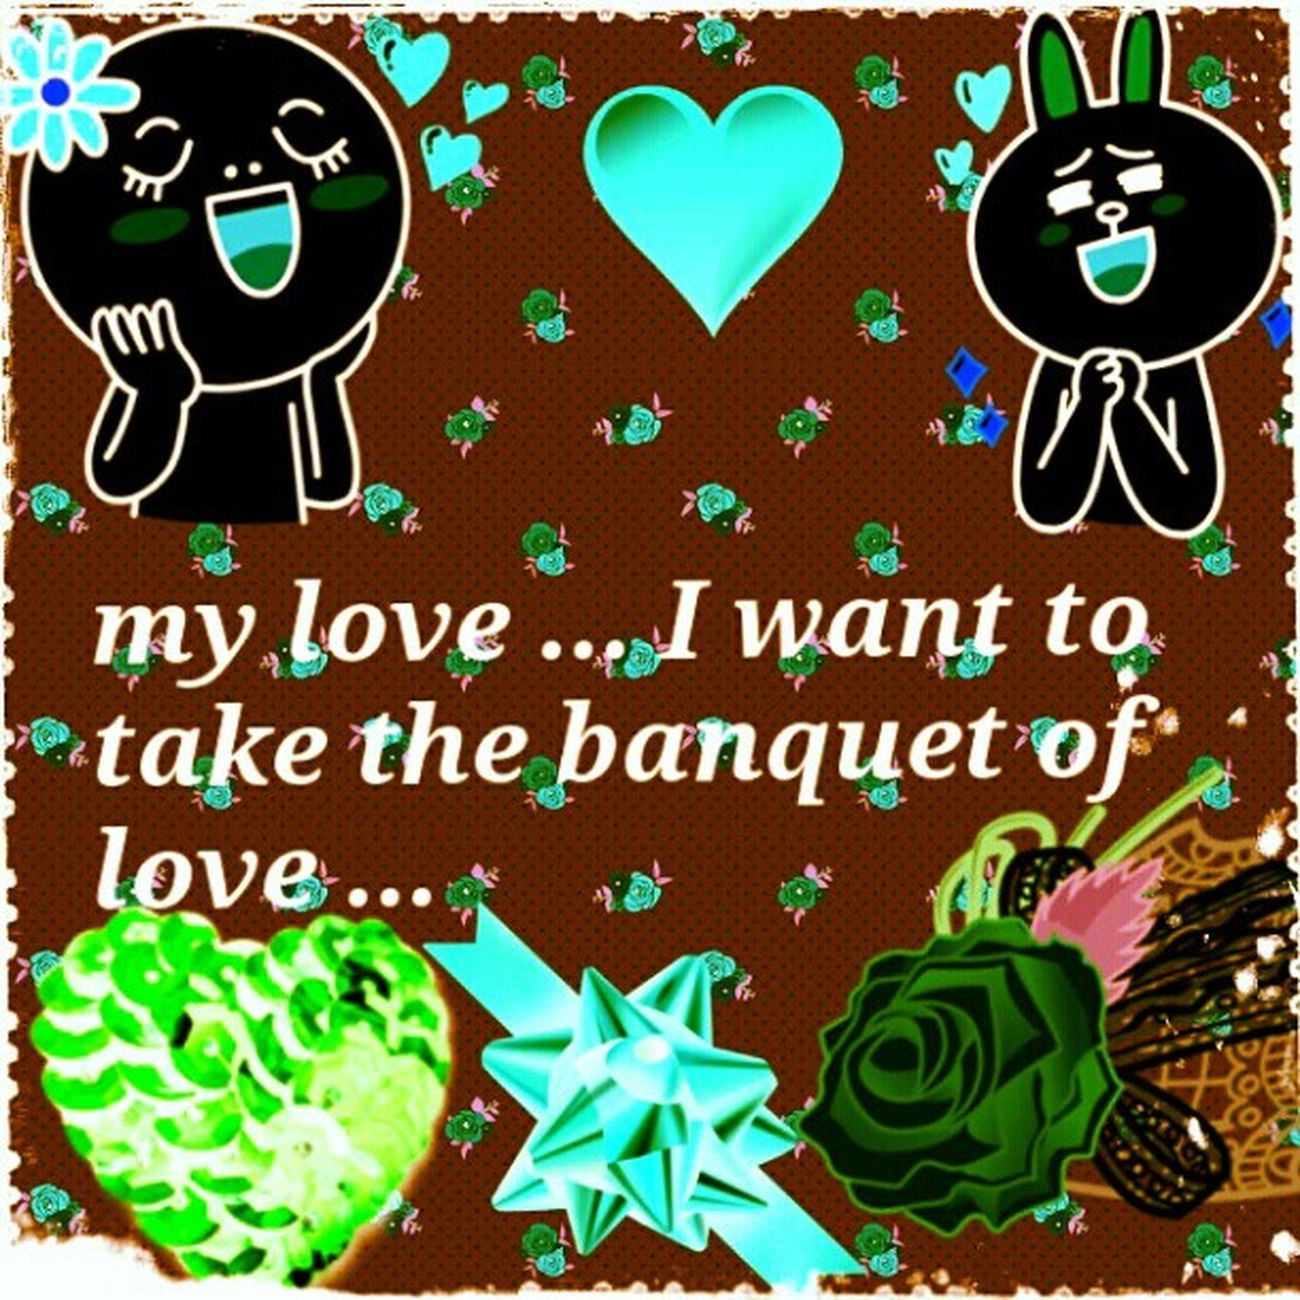 my love ... I want to take the banquet of love ... a five-star restaurant!! people settle for fast food restaurants or bad ...